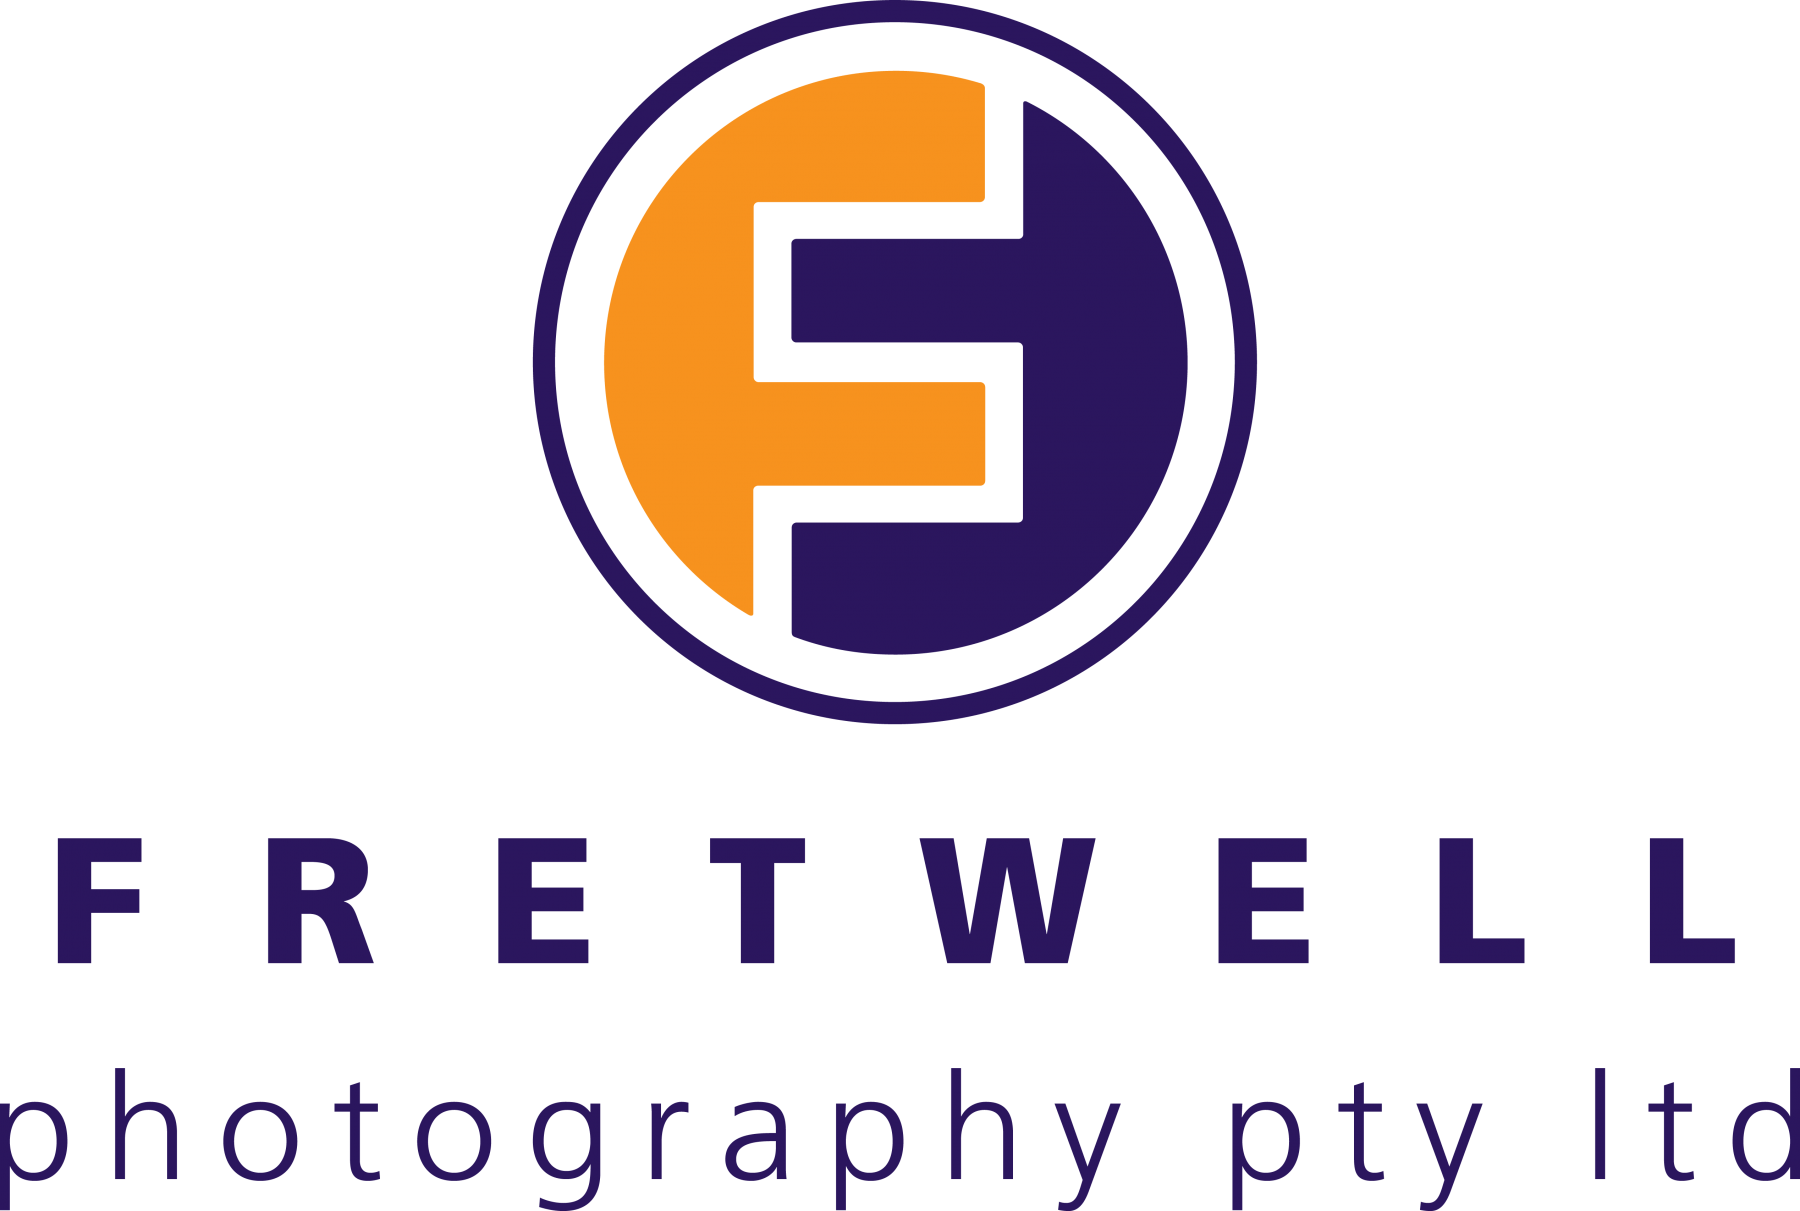 Fretwell logo from 2016